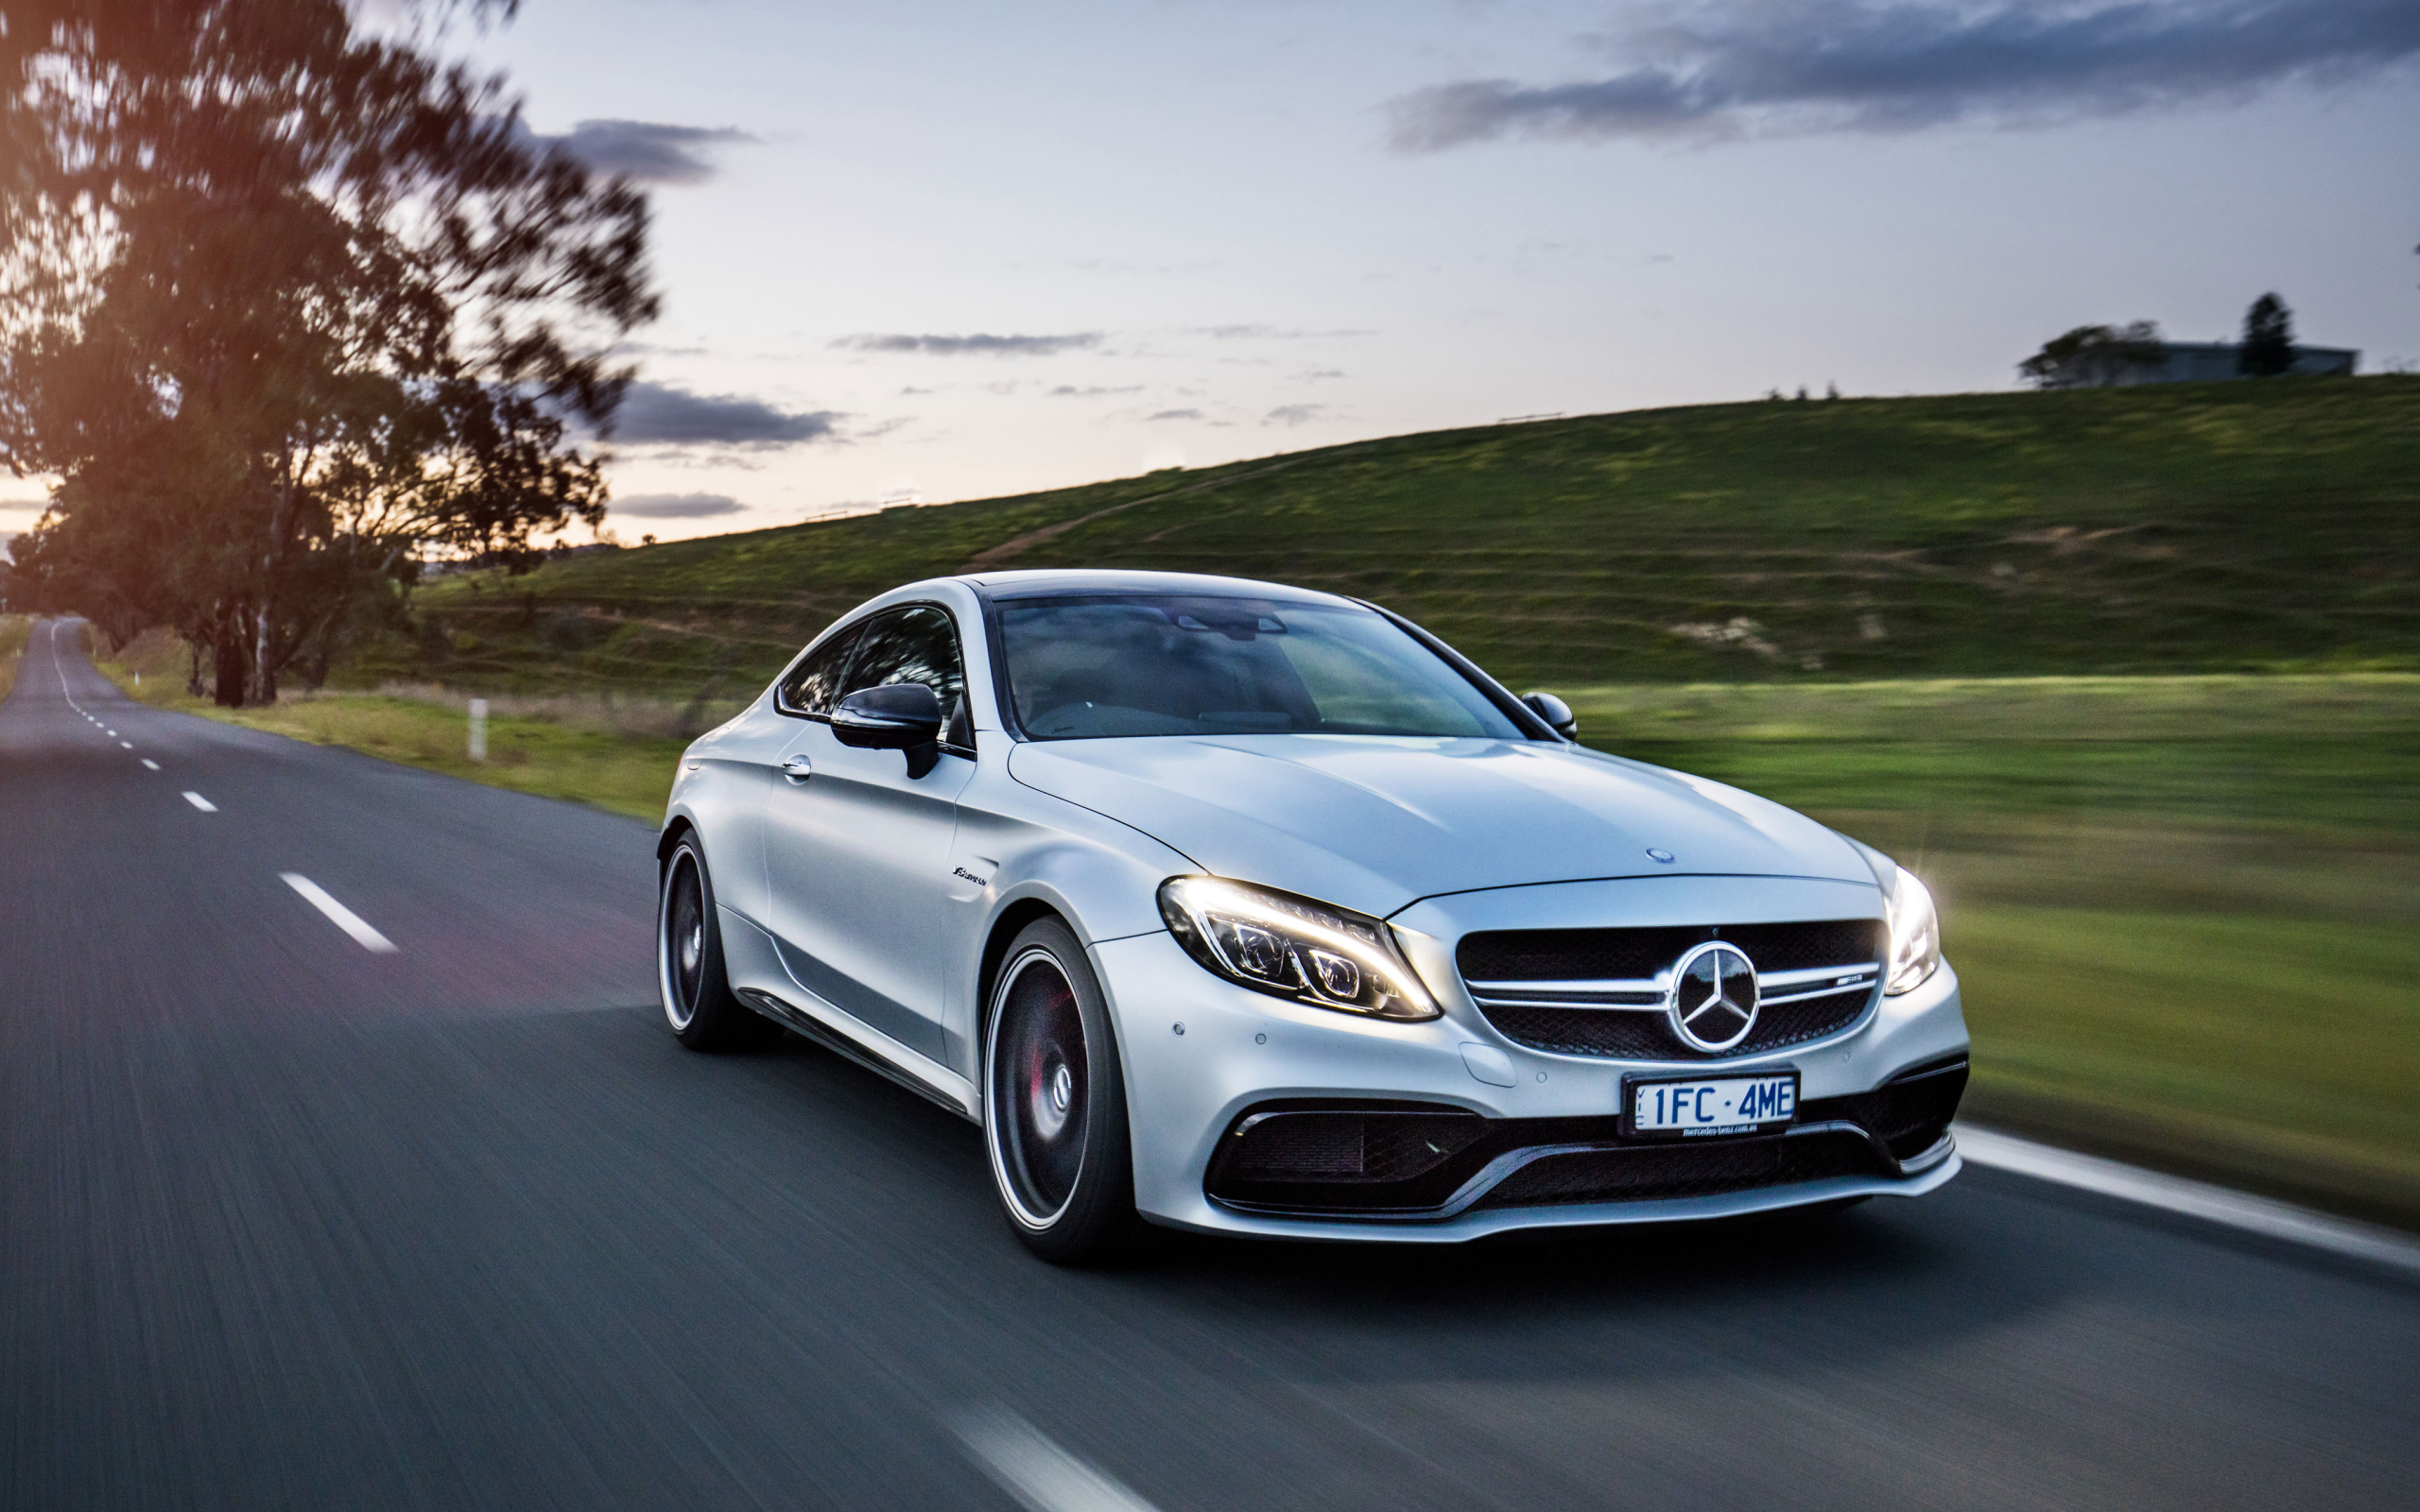 Wallpaper Of White Luxury Car Mercedes Benz C Class